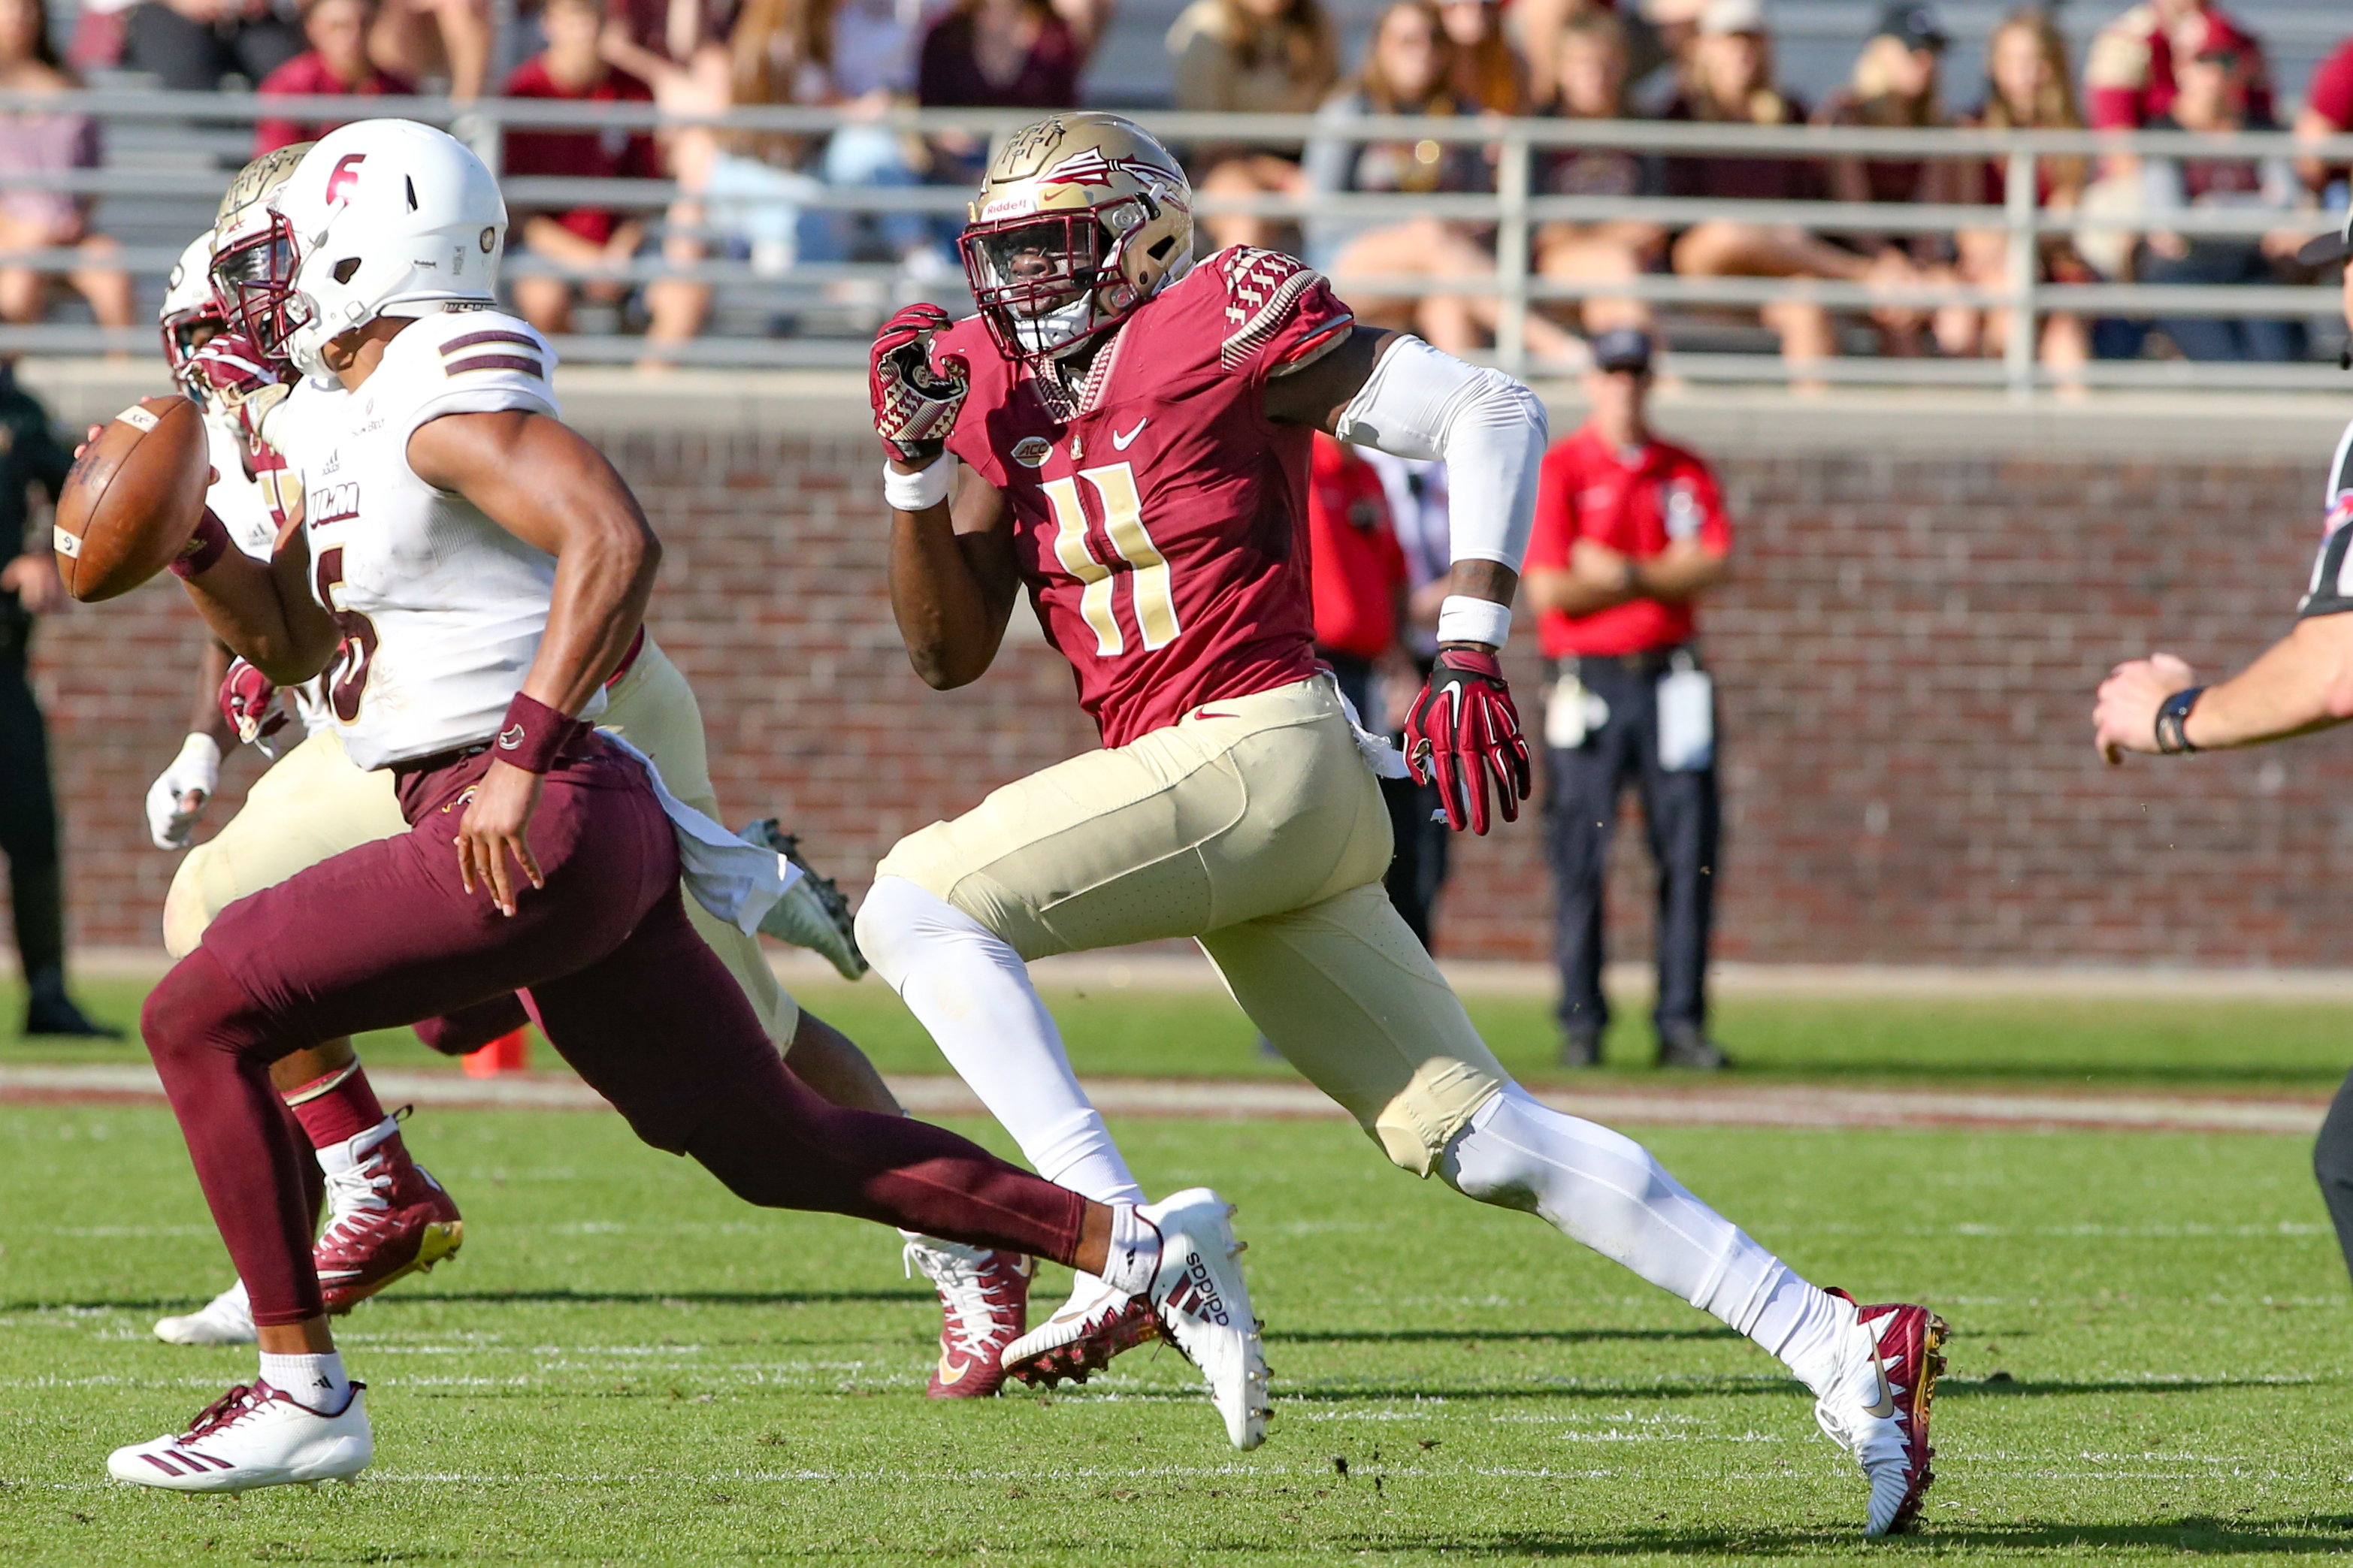 Photos: FSU vs. ULM